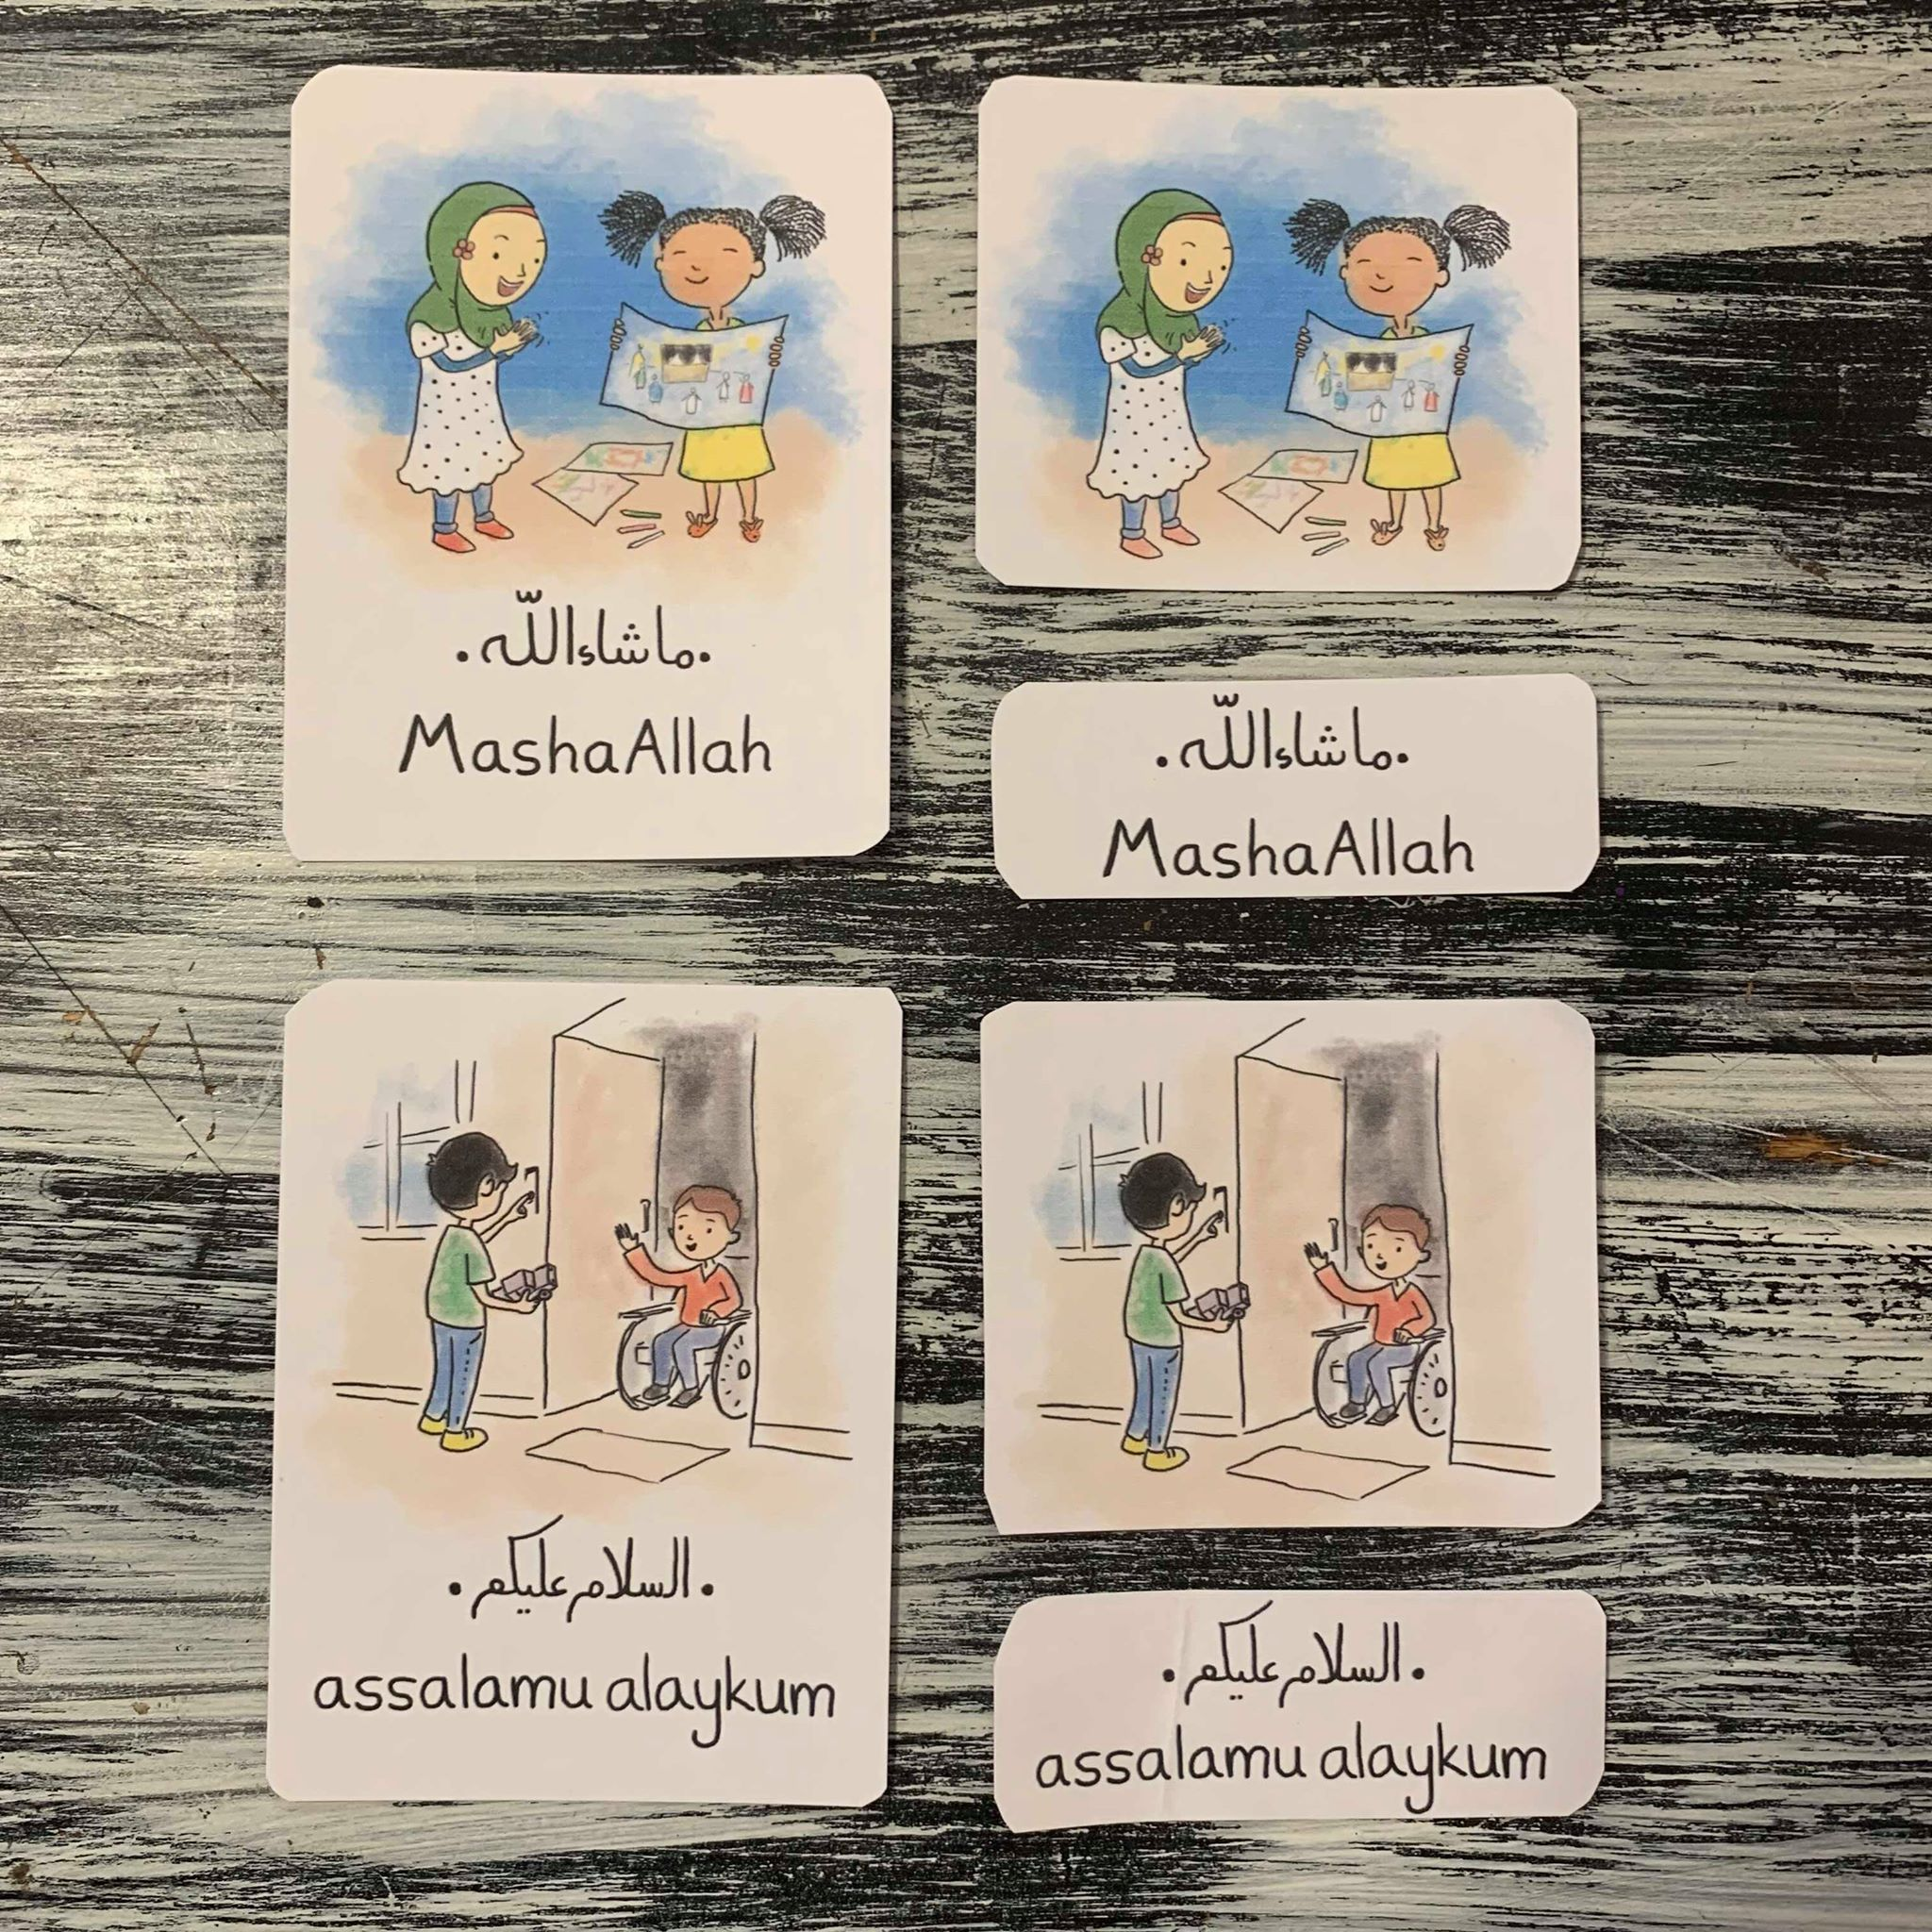 arabic greetings.jpg